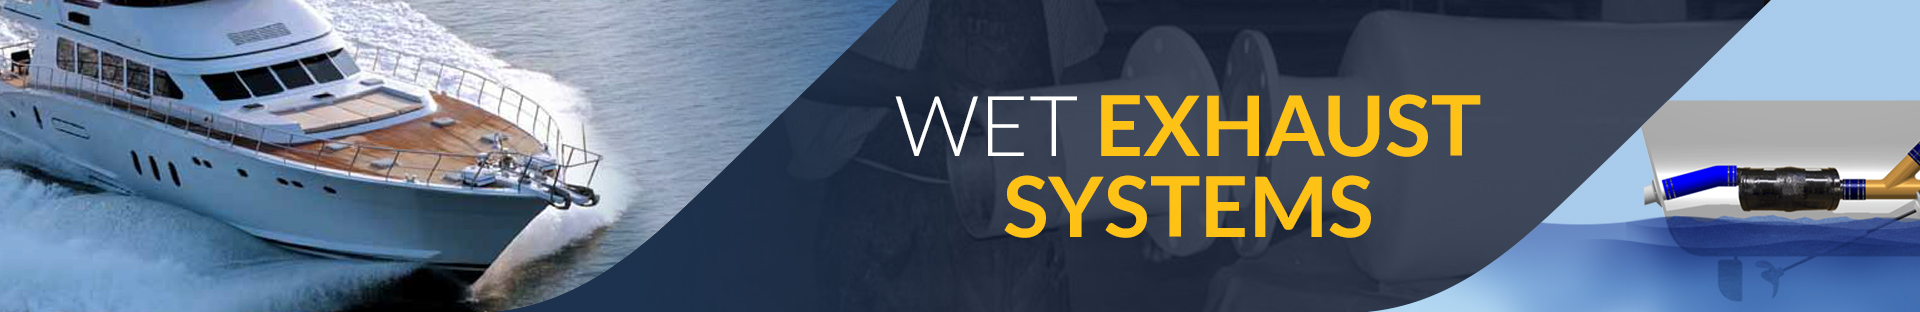 Wet Exhaust Systems